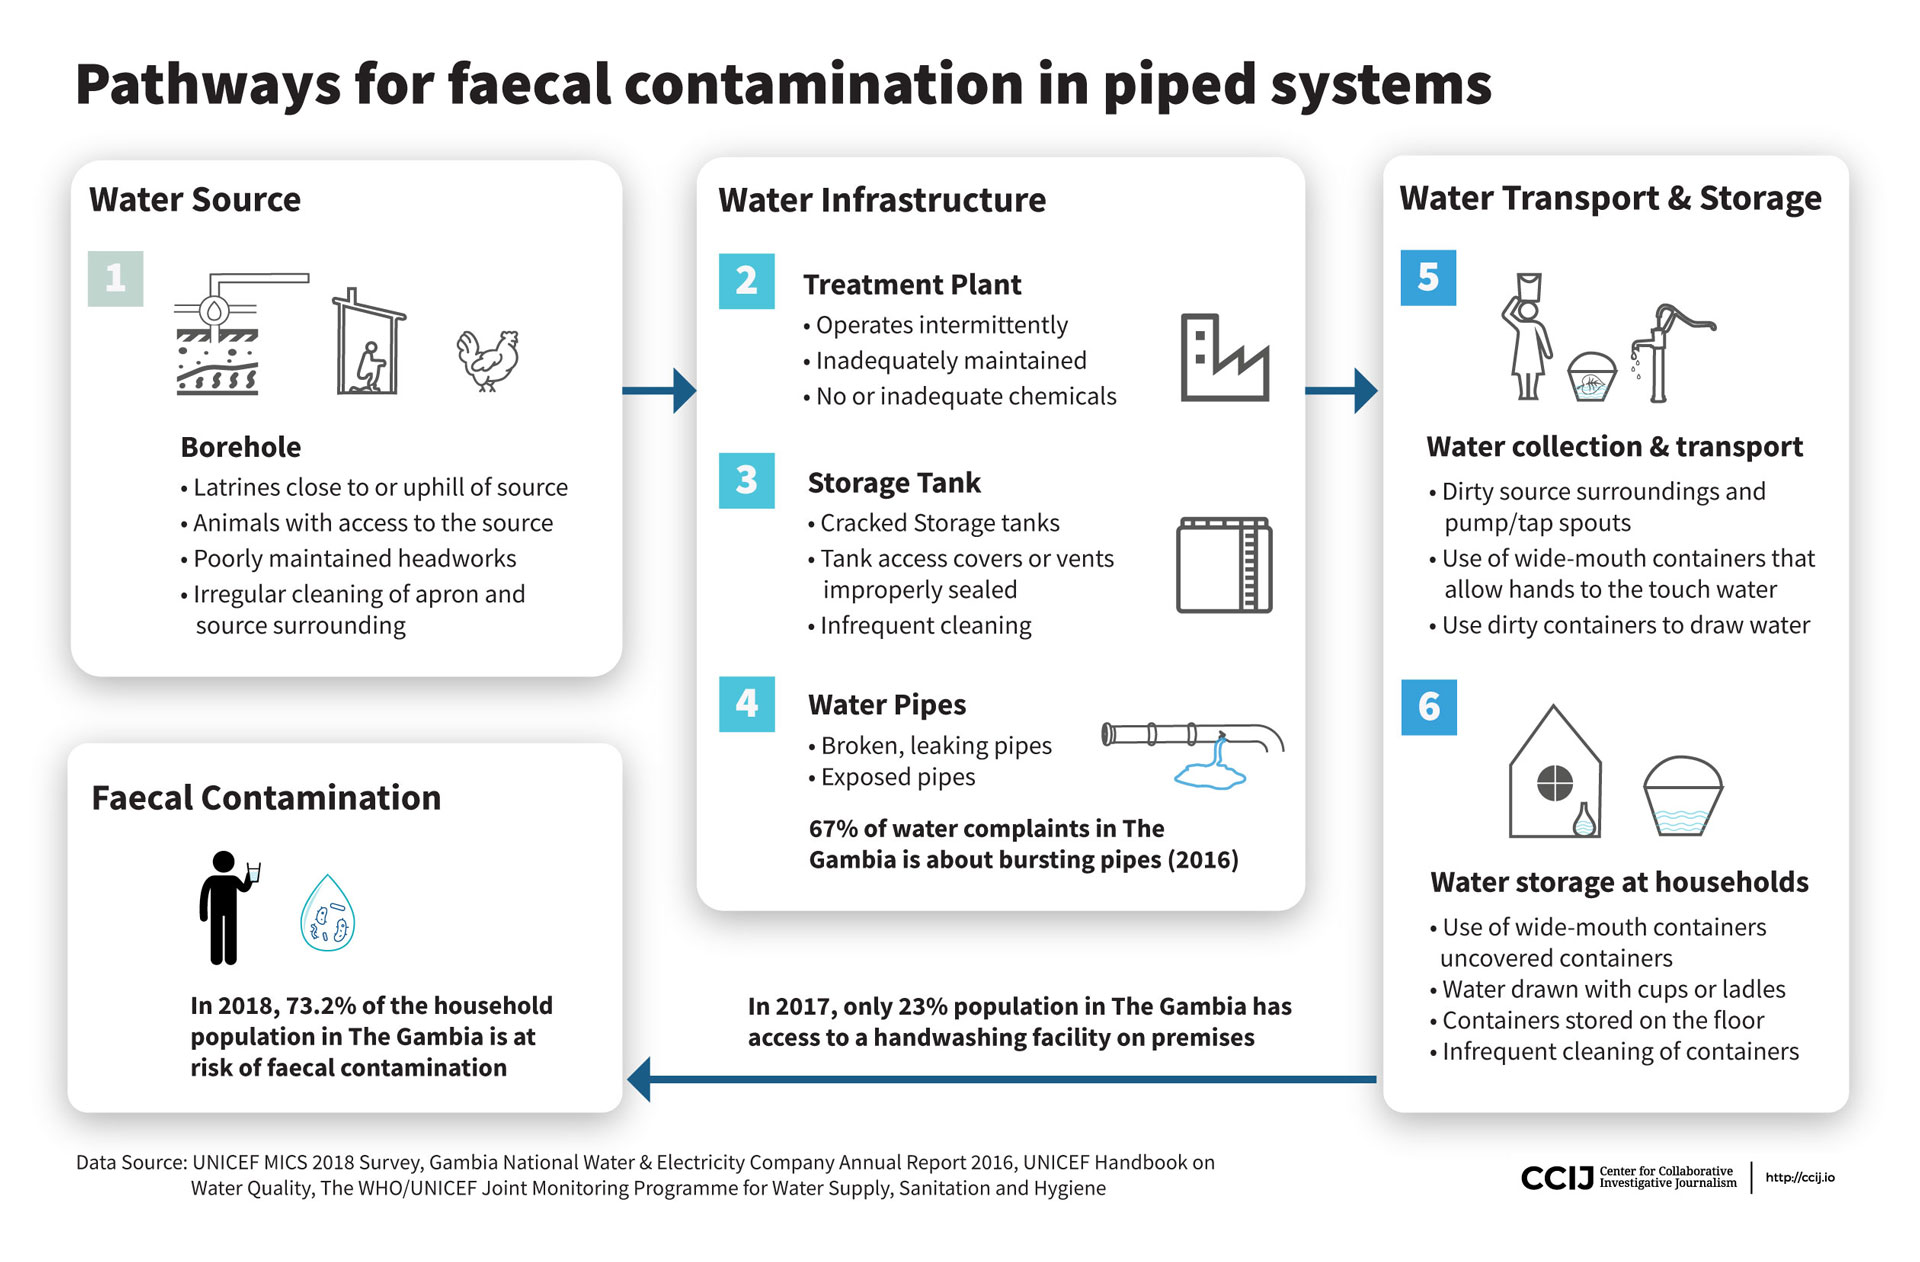 Pathways for faecal contamination in piped systems